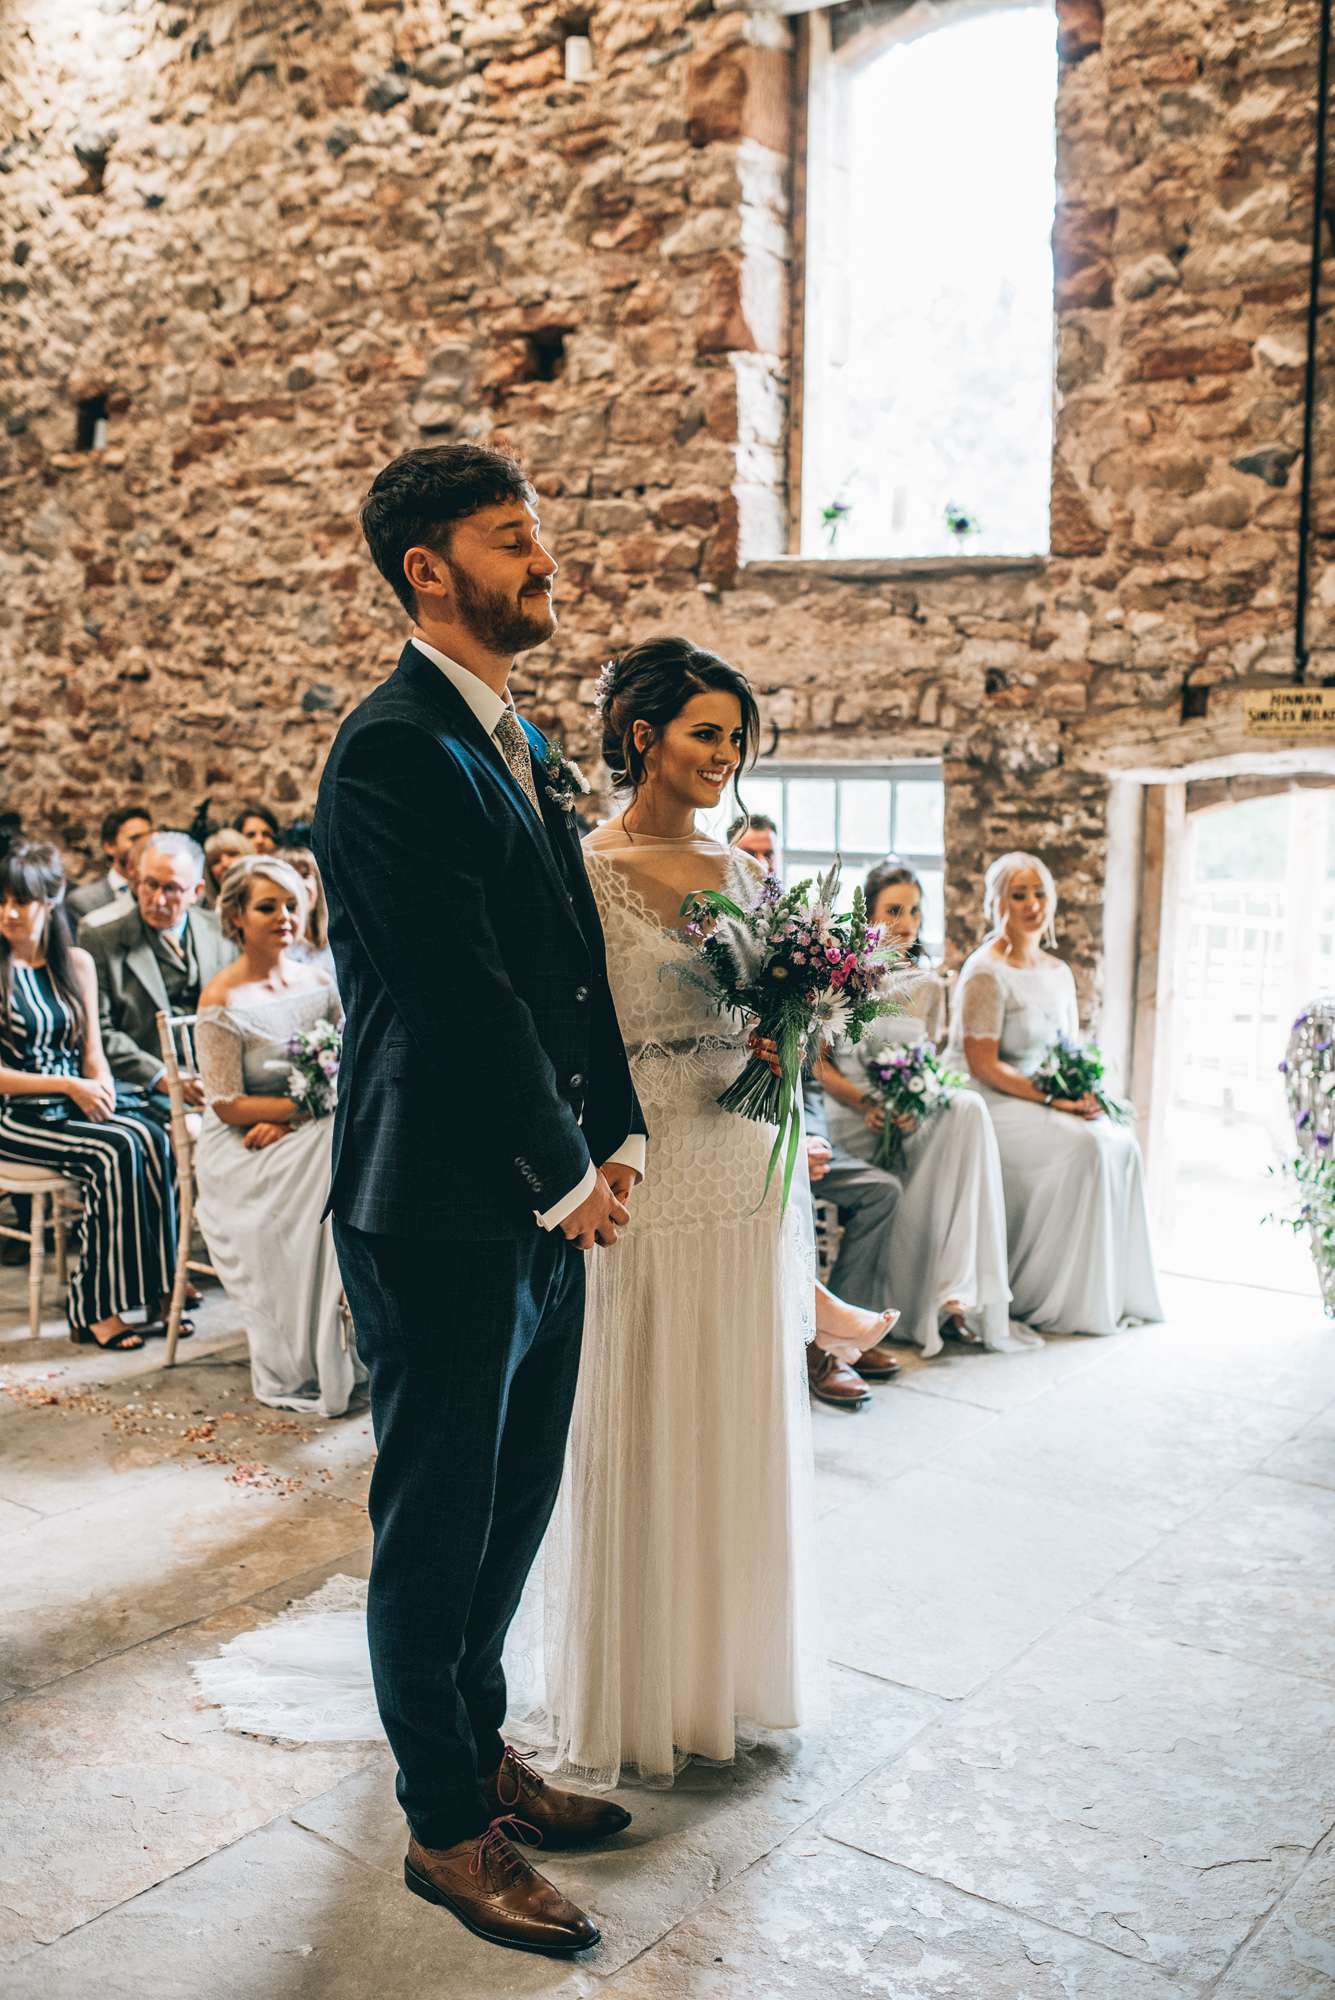 Kate-Beaumont-Sheffield-Lucy-Bohemian-Lace-Dress-Barn-Wedding-Cumbria-10.jpg